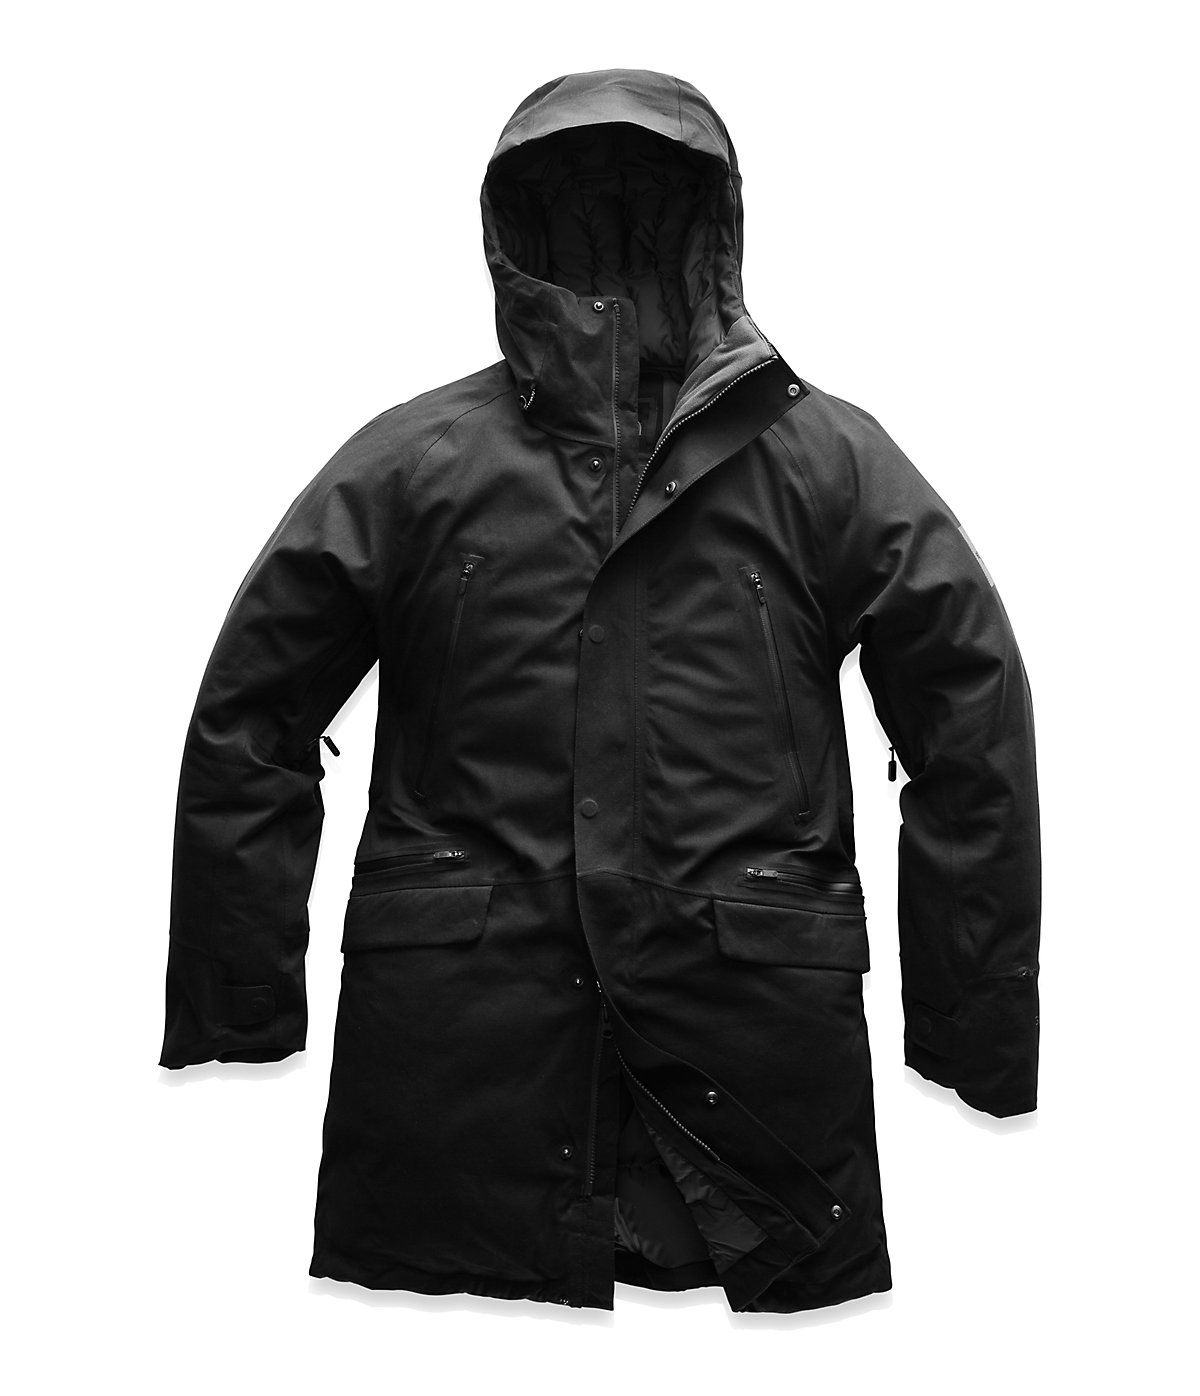 7f9bba5e2 Men's Cryos Cotton Blend Down Parka GTX in 2019 | Products | Down ...